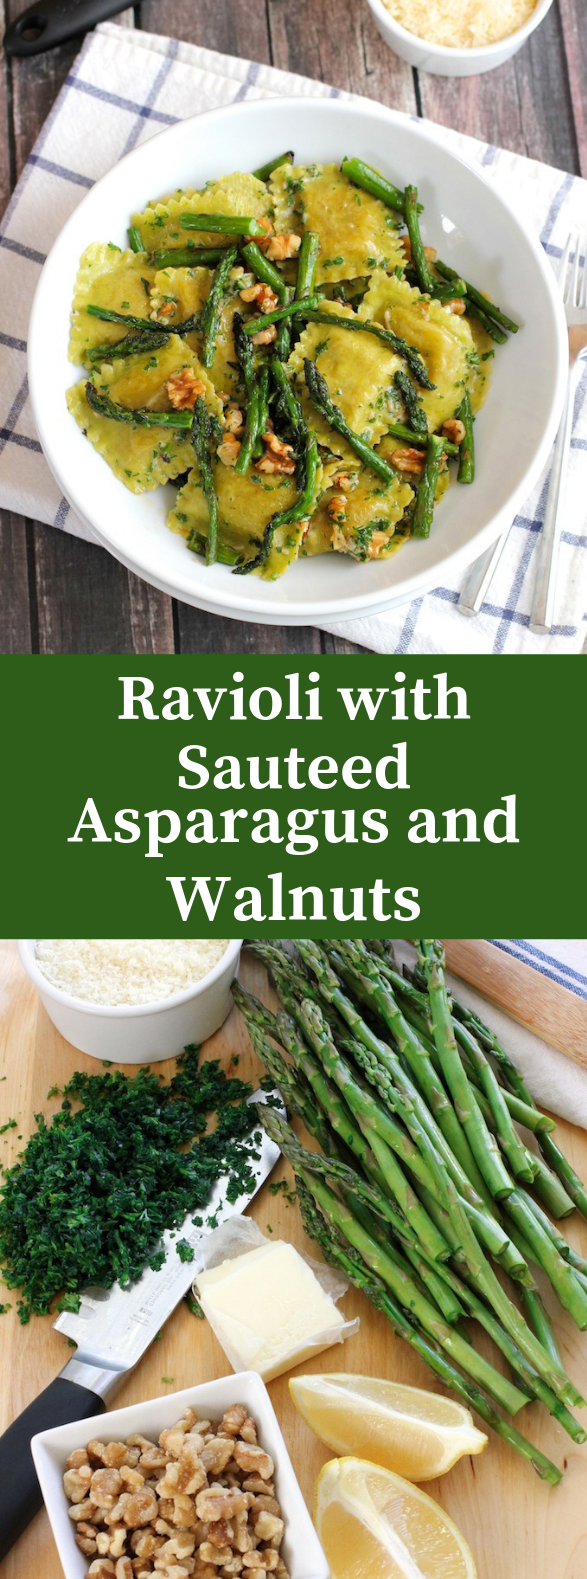 RAVIOLI WITH SAUTEED ASPARAGUS AND WALNUTS #Vegetarian #Asparagus